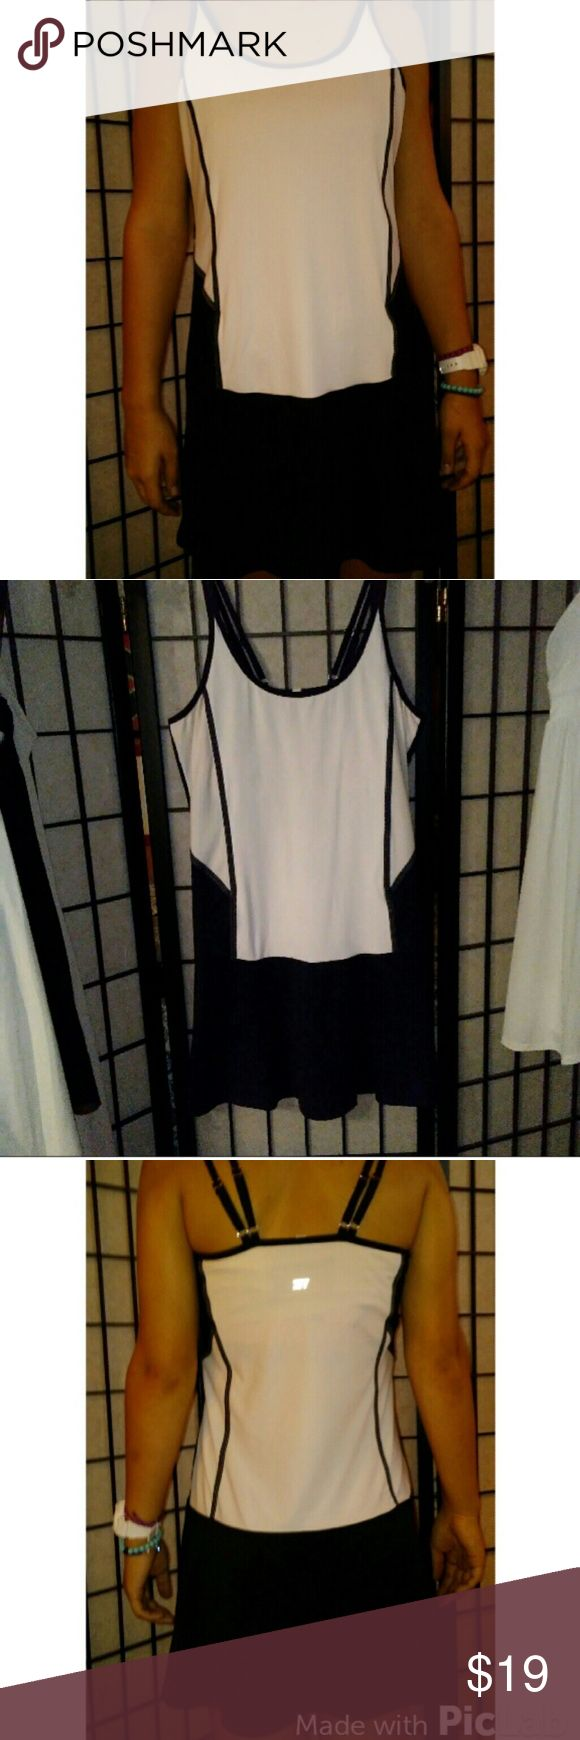 The dress is white - Tail Black White Tennis Dress